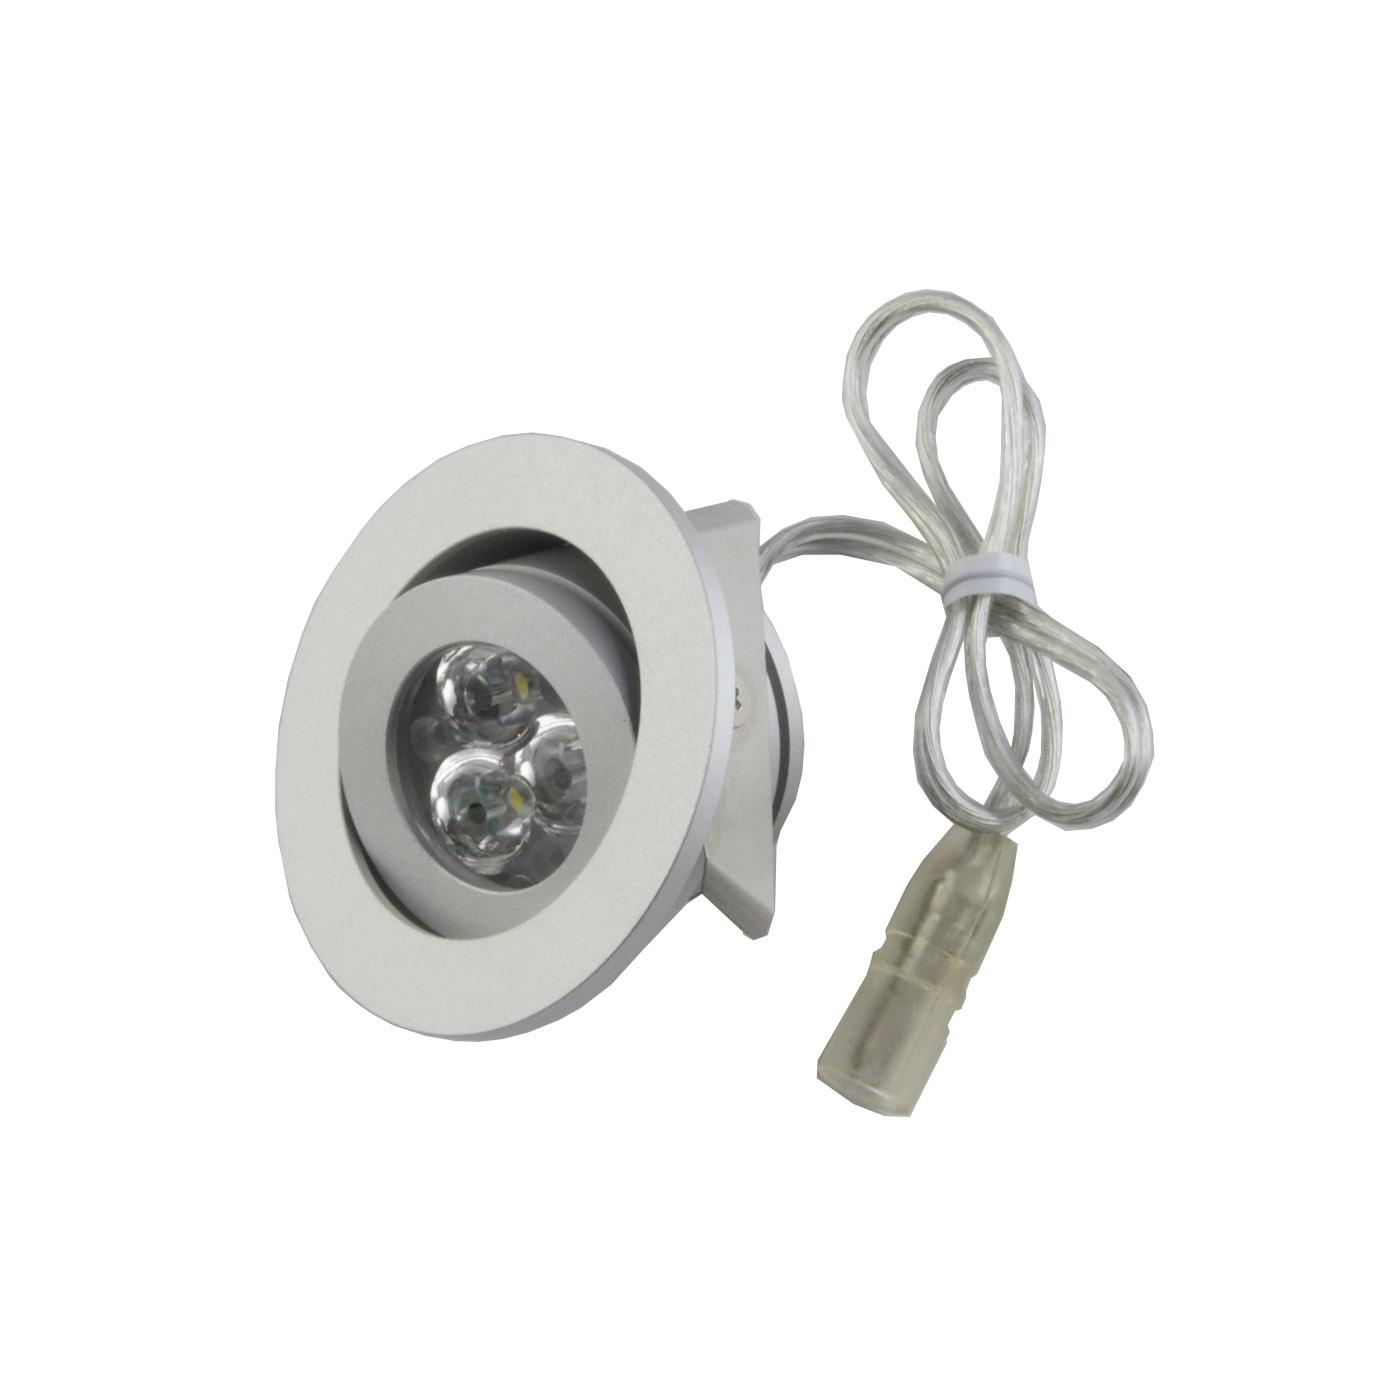 Dimmbare Led Spots Led Recessed Lighting Spotmod Recessed Gimbal 12v Led Fixture